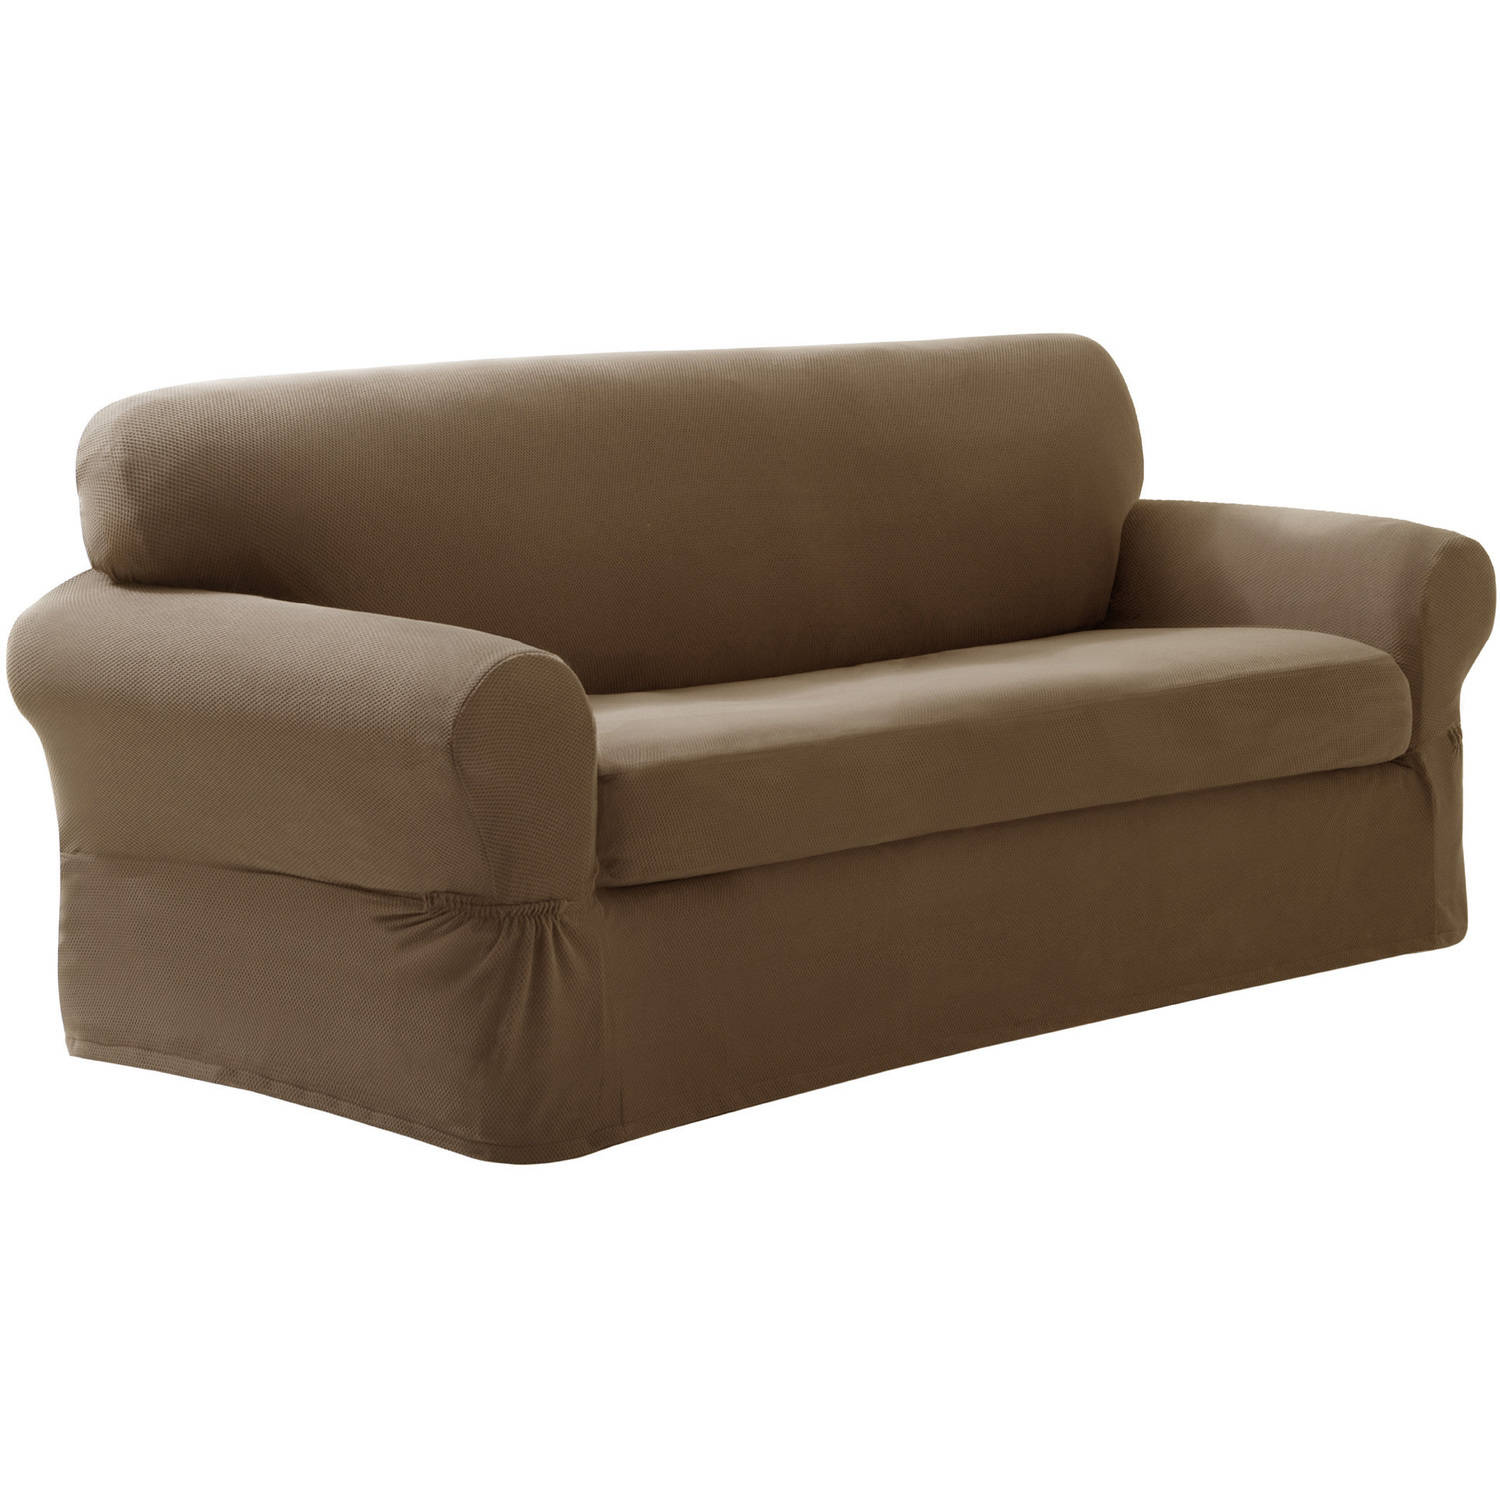 Maytex Stretch 2-Piece Sofa Slipcover  sc 1 st  Walmart : sectional slipcovers walmart - Sectionals, Sofas & Couches